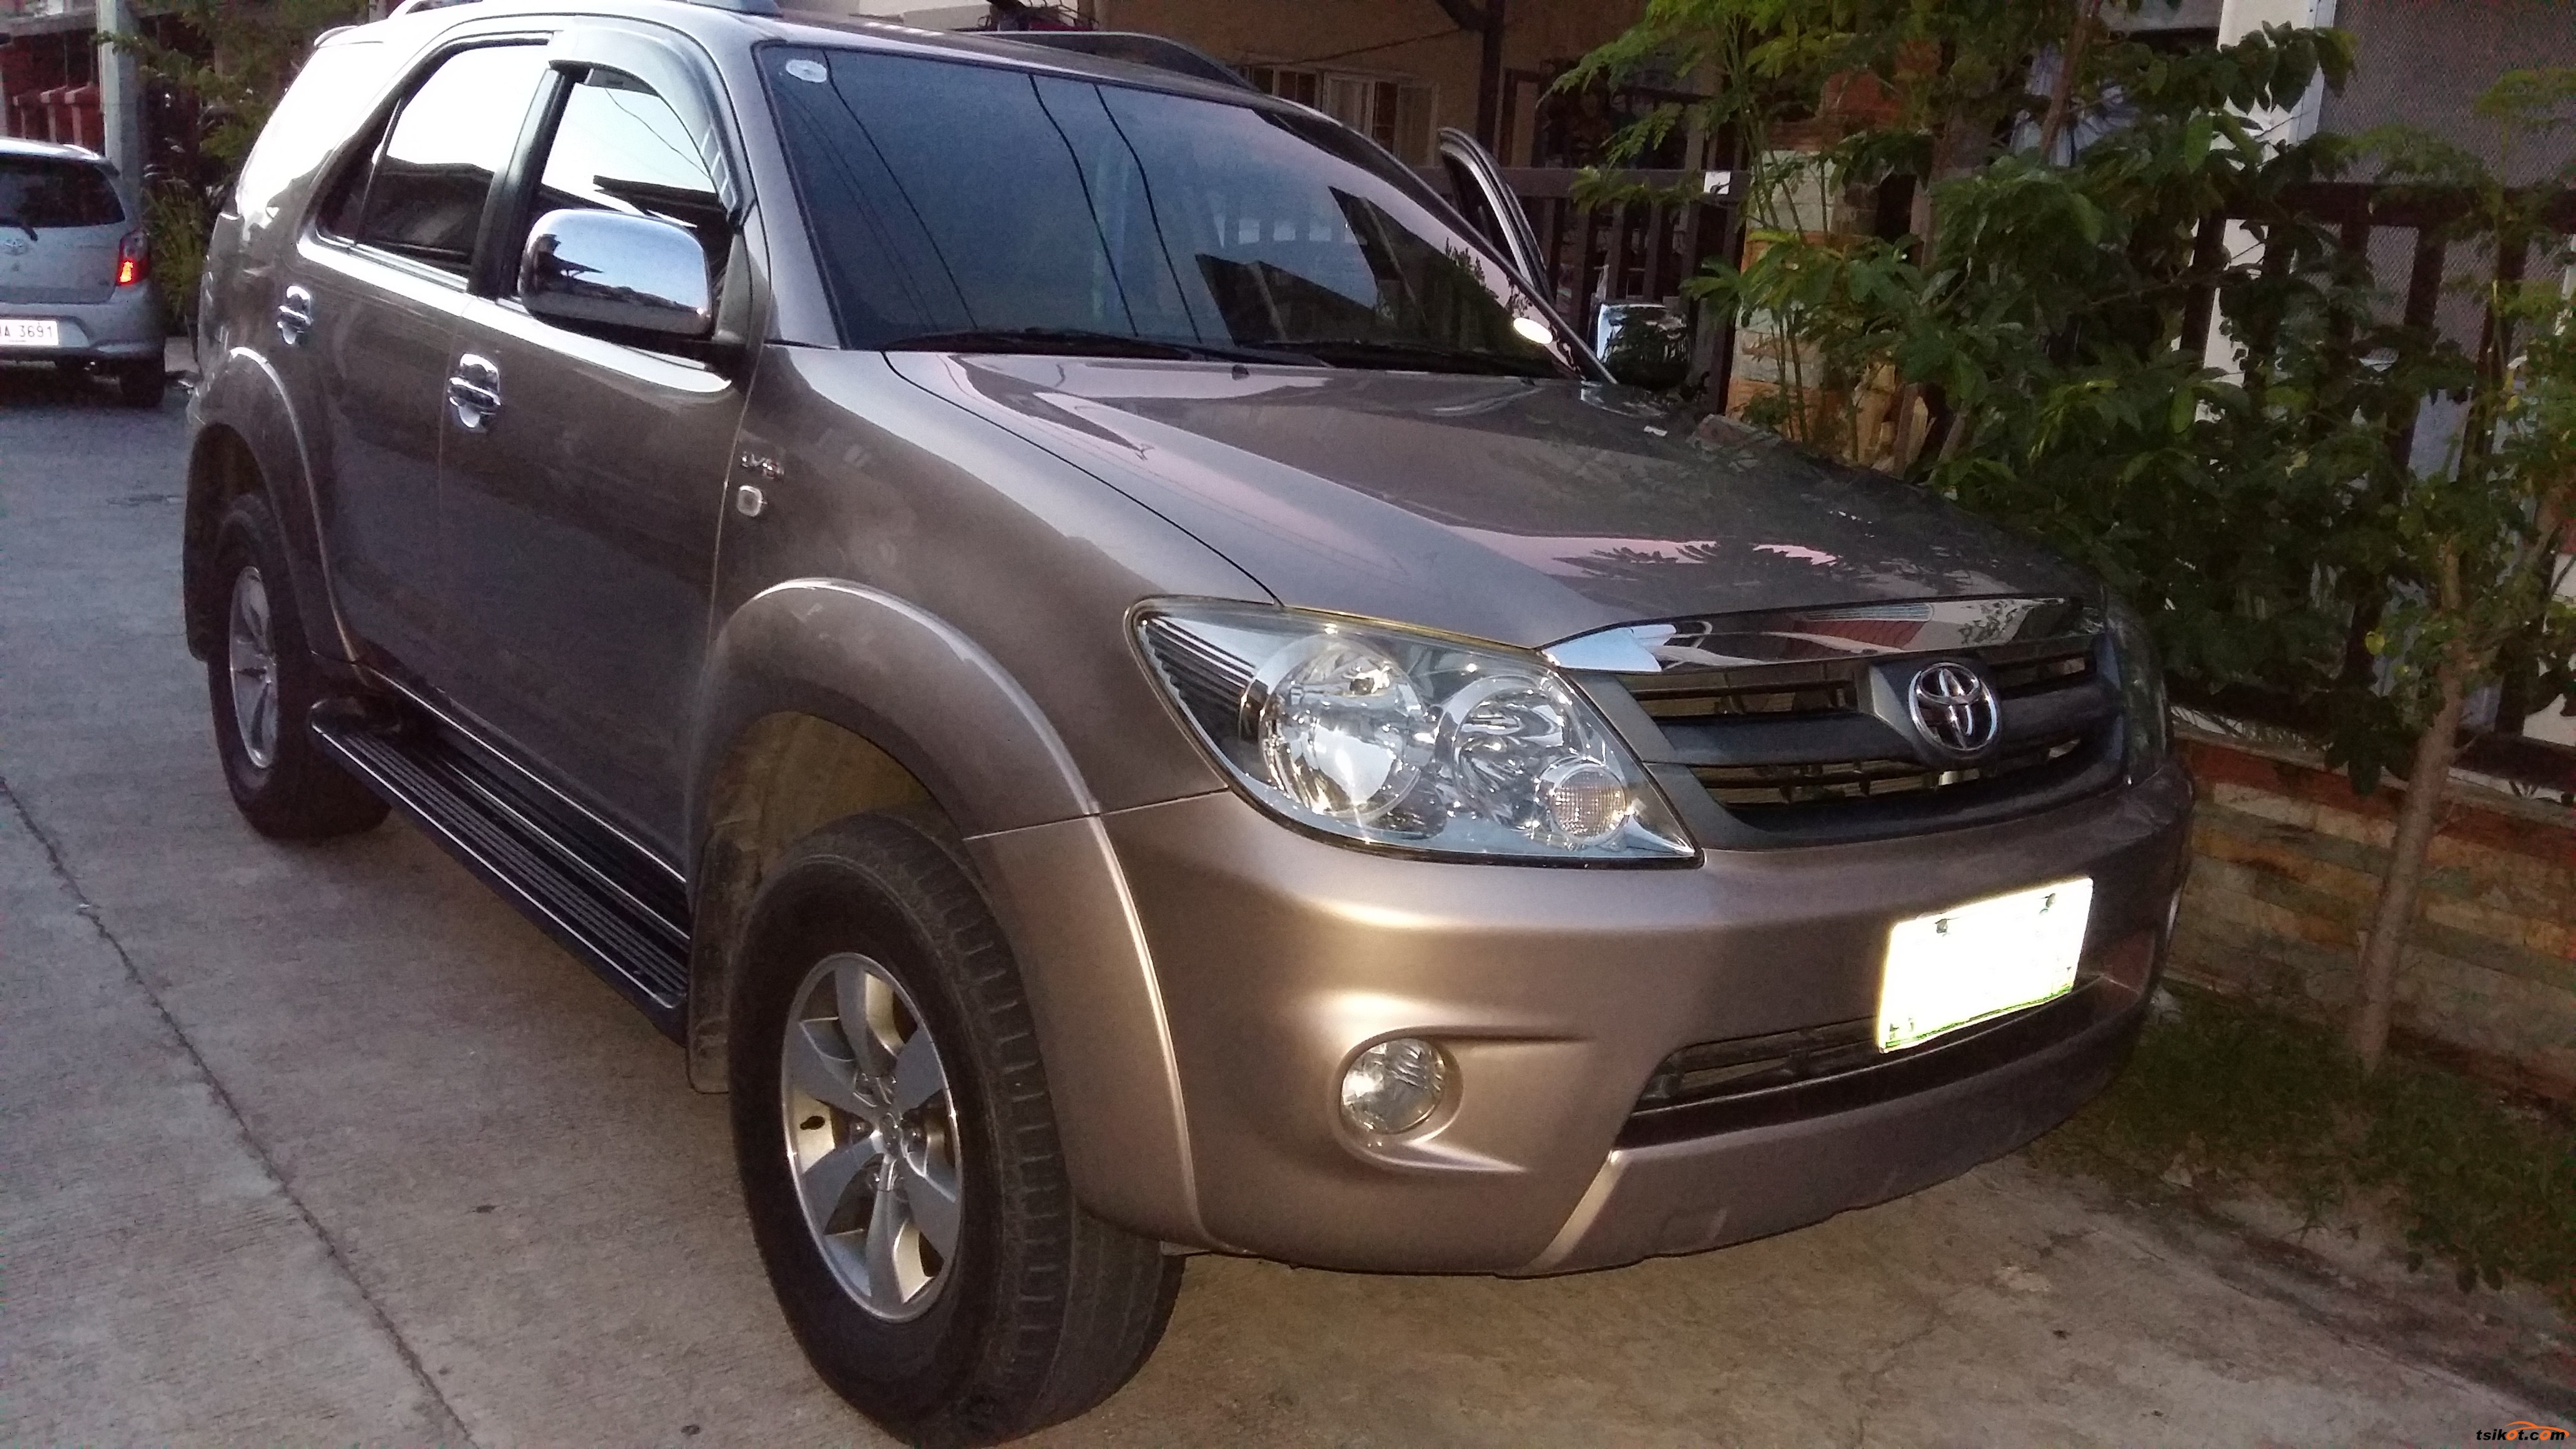 Toyota Fortuner 2006 - Car for Sale Central Luzon